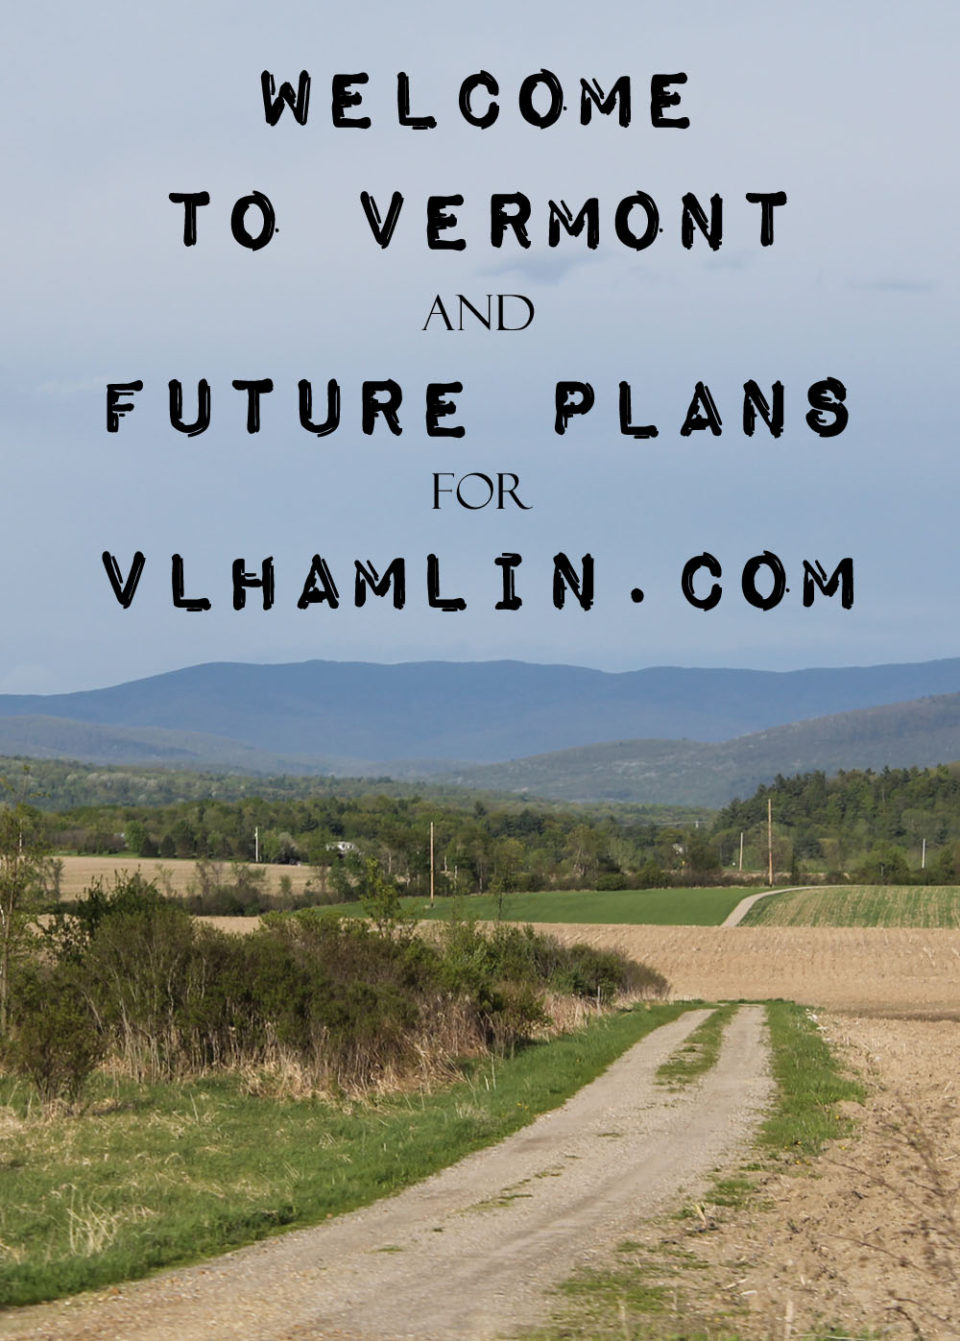 Welcome to Vermont and Future Plans